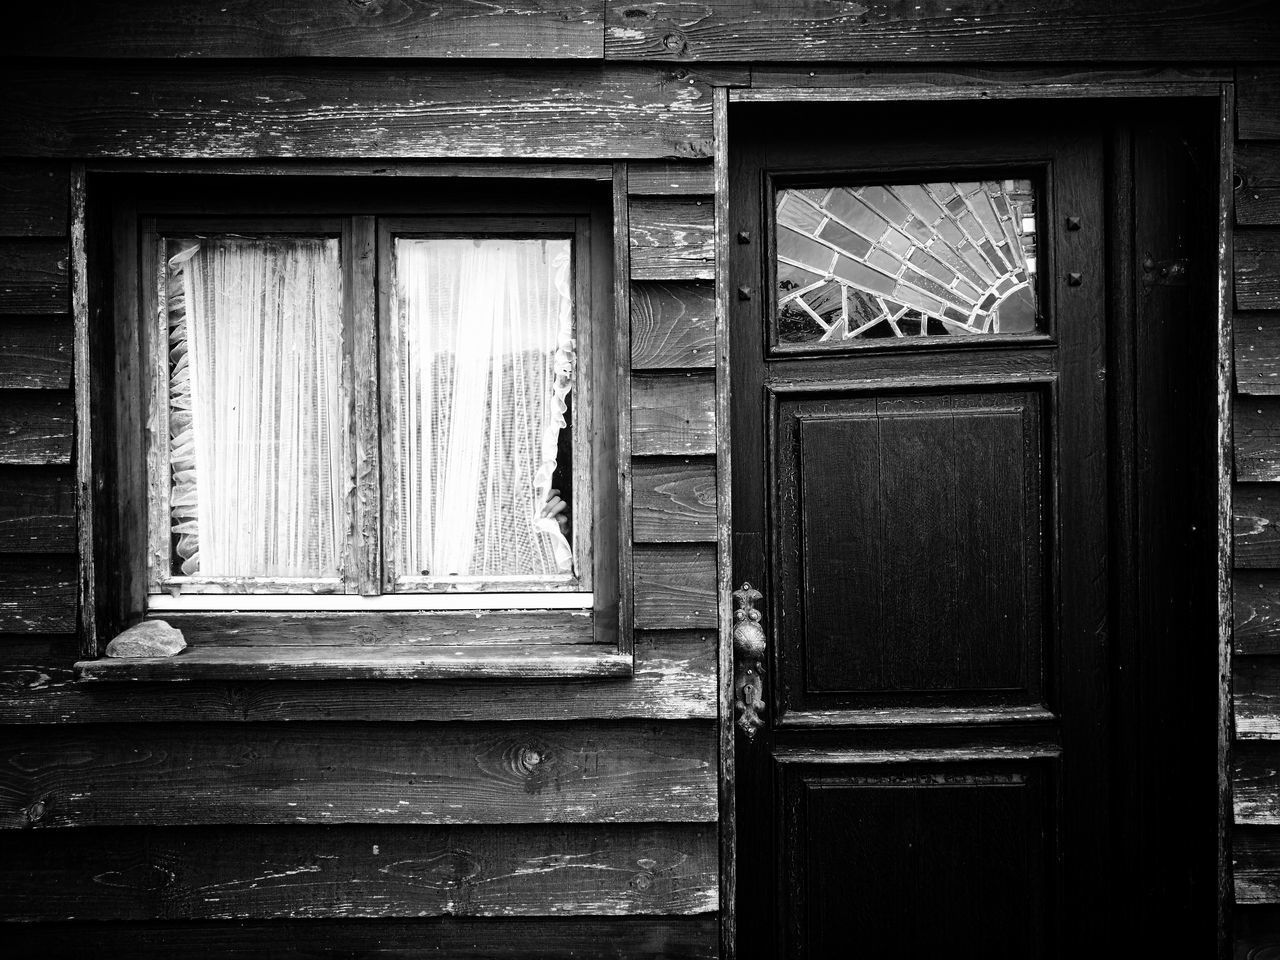 window, wood - material, architecture, building exterior, built structure, building, door, no people, house, closed, entrance, day, safety, security, protection, old, outdoors, residential district, wood, glass - material